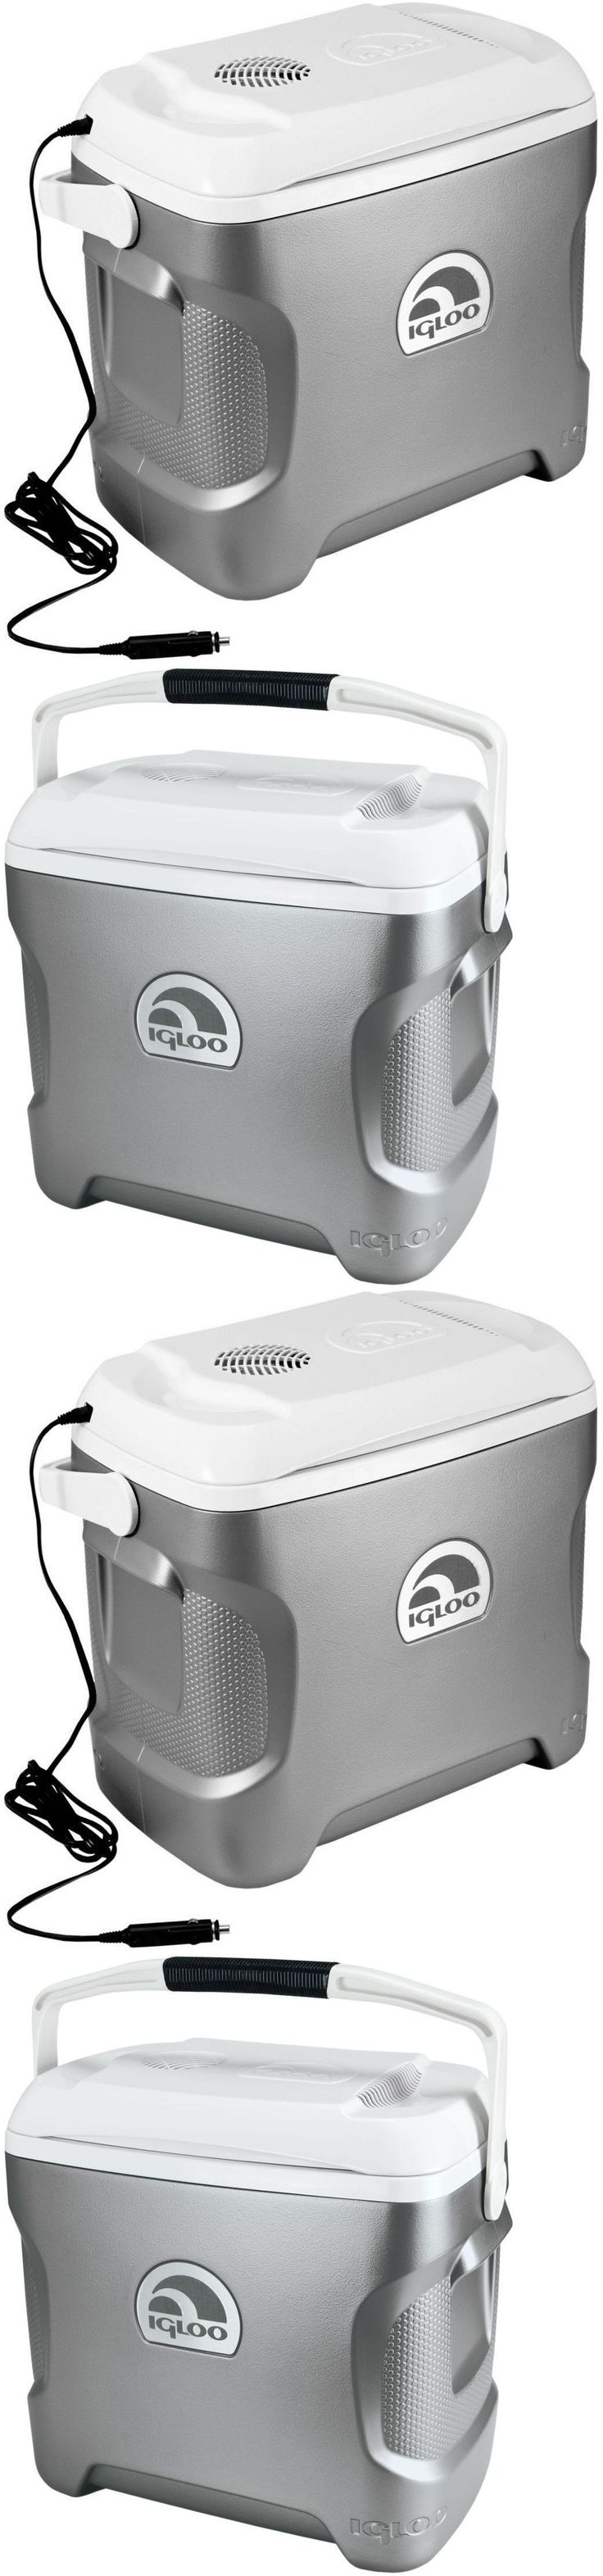 12-Volt Portable Appliances: Grocery Cooler Portable Fridge For Car Truck Camping Travel Igloo Iceless 12V -> BUY IT NOW ONLY: $104.95 on eBay!